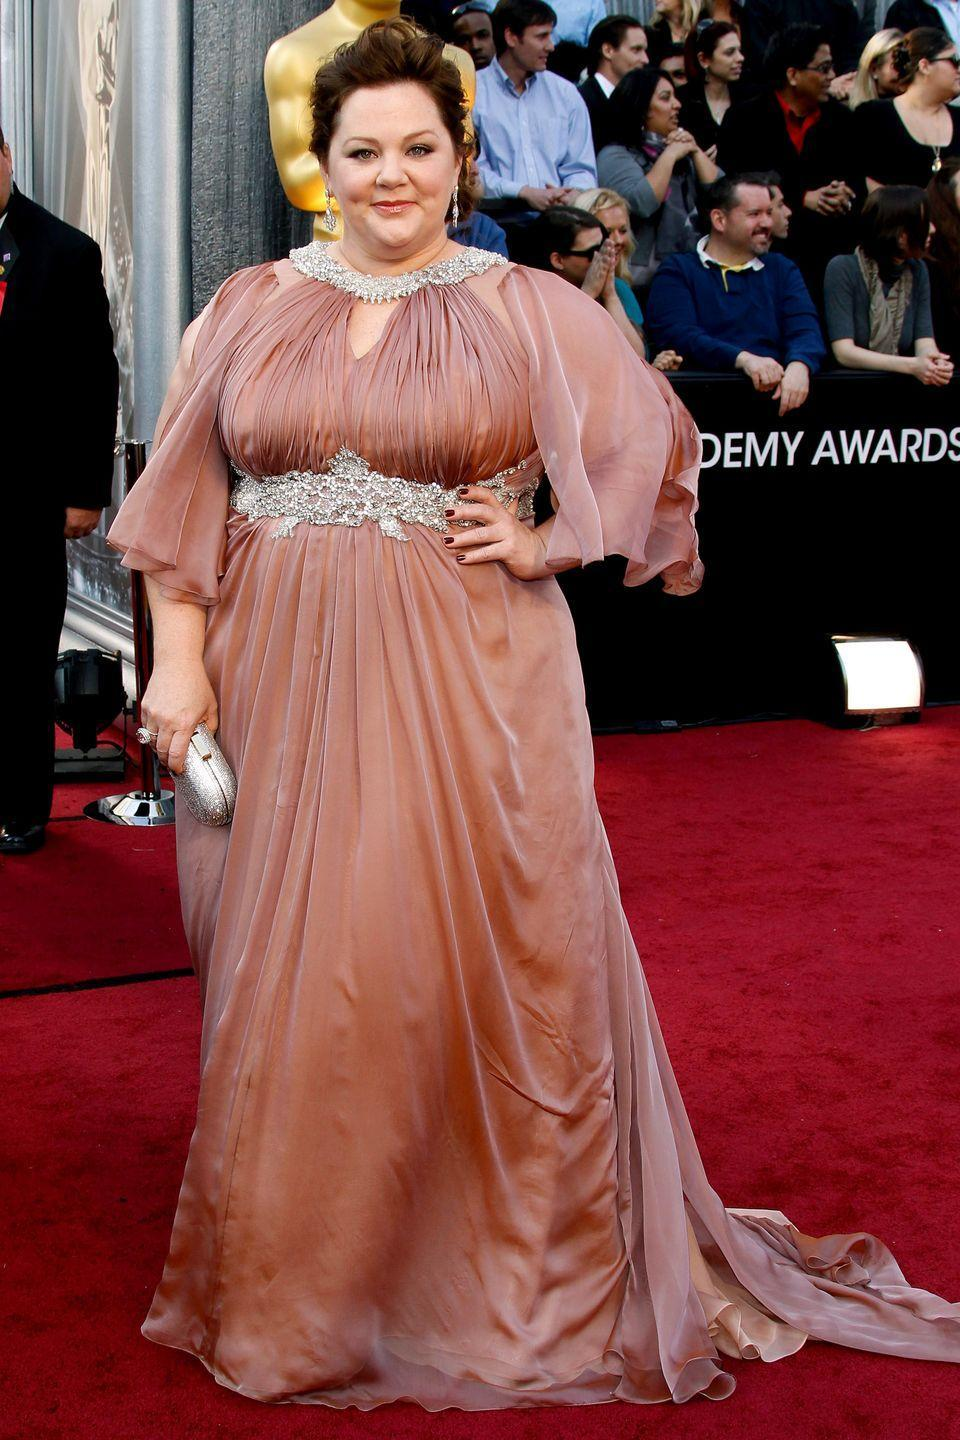 """<p>McCarthy may have been nominated for a Best Supporting Actress Oscar for her hilarious turn in <em>Bridesmaids</em>, but she still couldn't find a designer to dress her for the 2012 Academy Awards. </p><p>""""Two Oscars ago [in 2012], I couldn't find anybody to do a dress for me. I asked five or six designers—very high-level ones who make lots of dresses for people - and they <em>all</em> said no,"""" she told <em><a href=""""http://www.redbookmag.com/fashion/interviews/g787/melissa-mccarthy-interview/?click=list#last-slide"""" rel=""""nofollow noopener"""" target=""""_blank"""" data-ylk=""""slk:Redbook"""" class=""""link rapid-noclick-resp"""">Redbook</a></em>. She eventually walked the red carpet in a draped rose-gold dress by plus-size designer Marina Rinaldi (pictured). </p><p>The experience prompted the comedian—having previously studied clothing and textiles at the Fashion Institute of Technology—to create her own fashion line to help women """"feel good about themselves.""""</p>"""